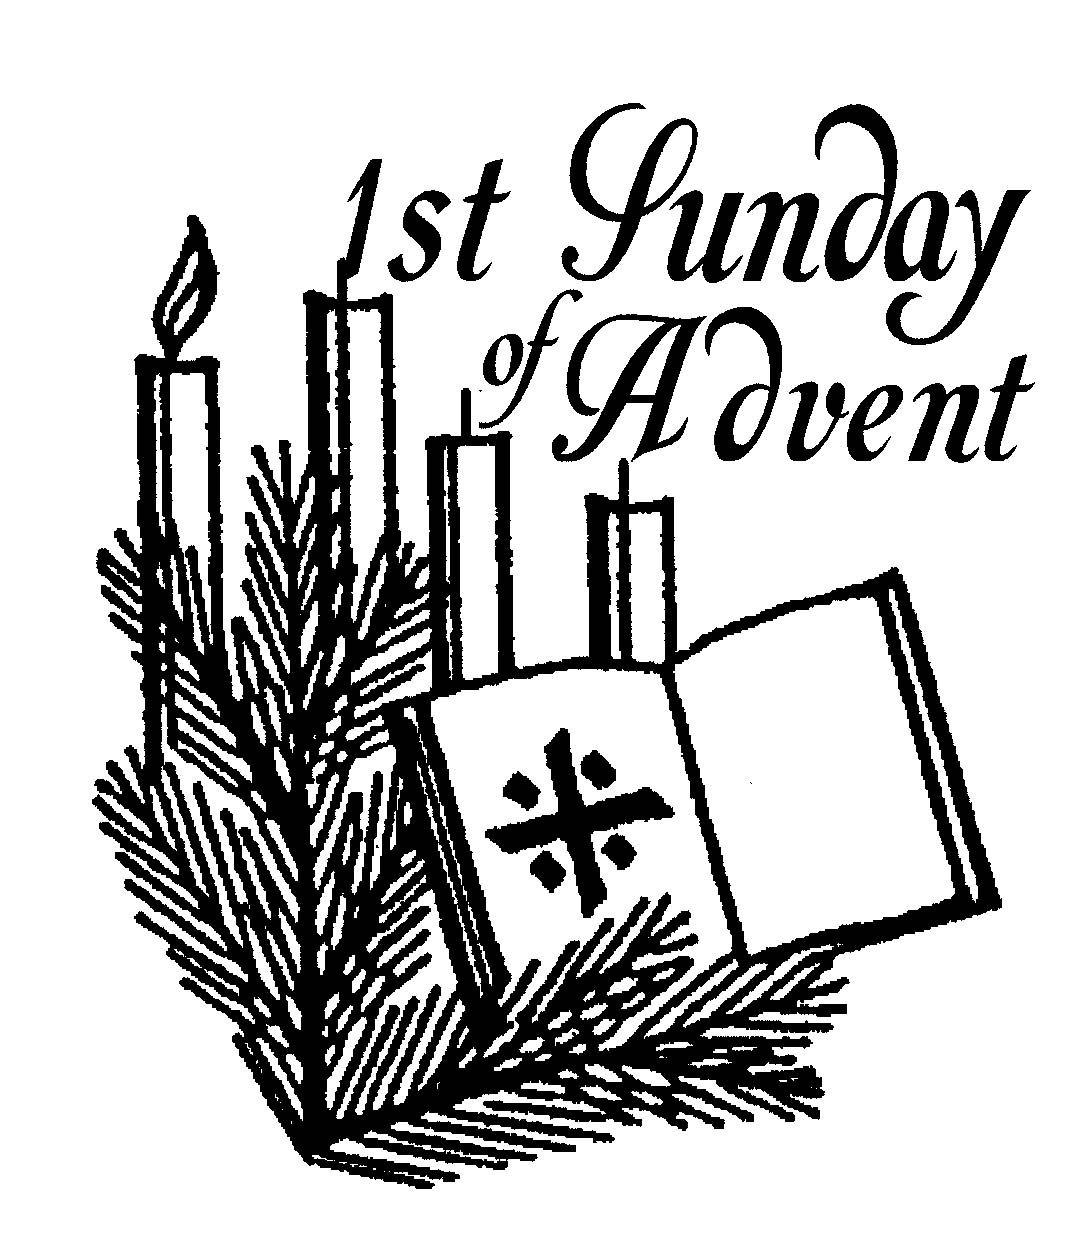 Library of free svg royalty free library for second sunday